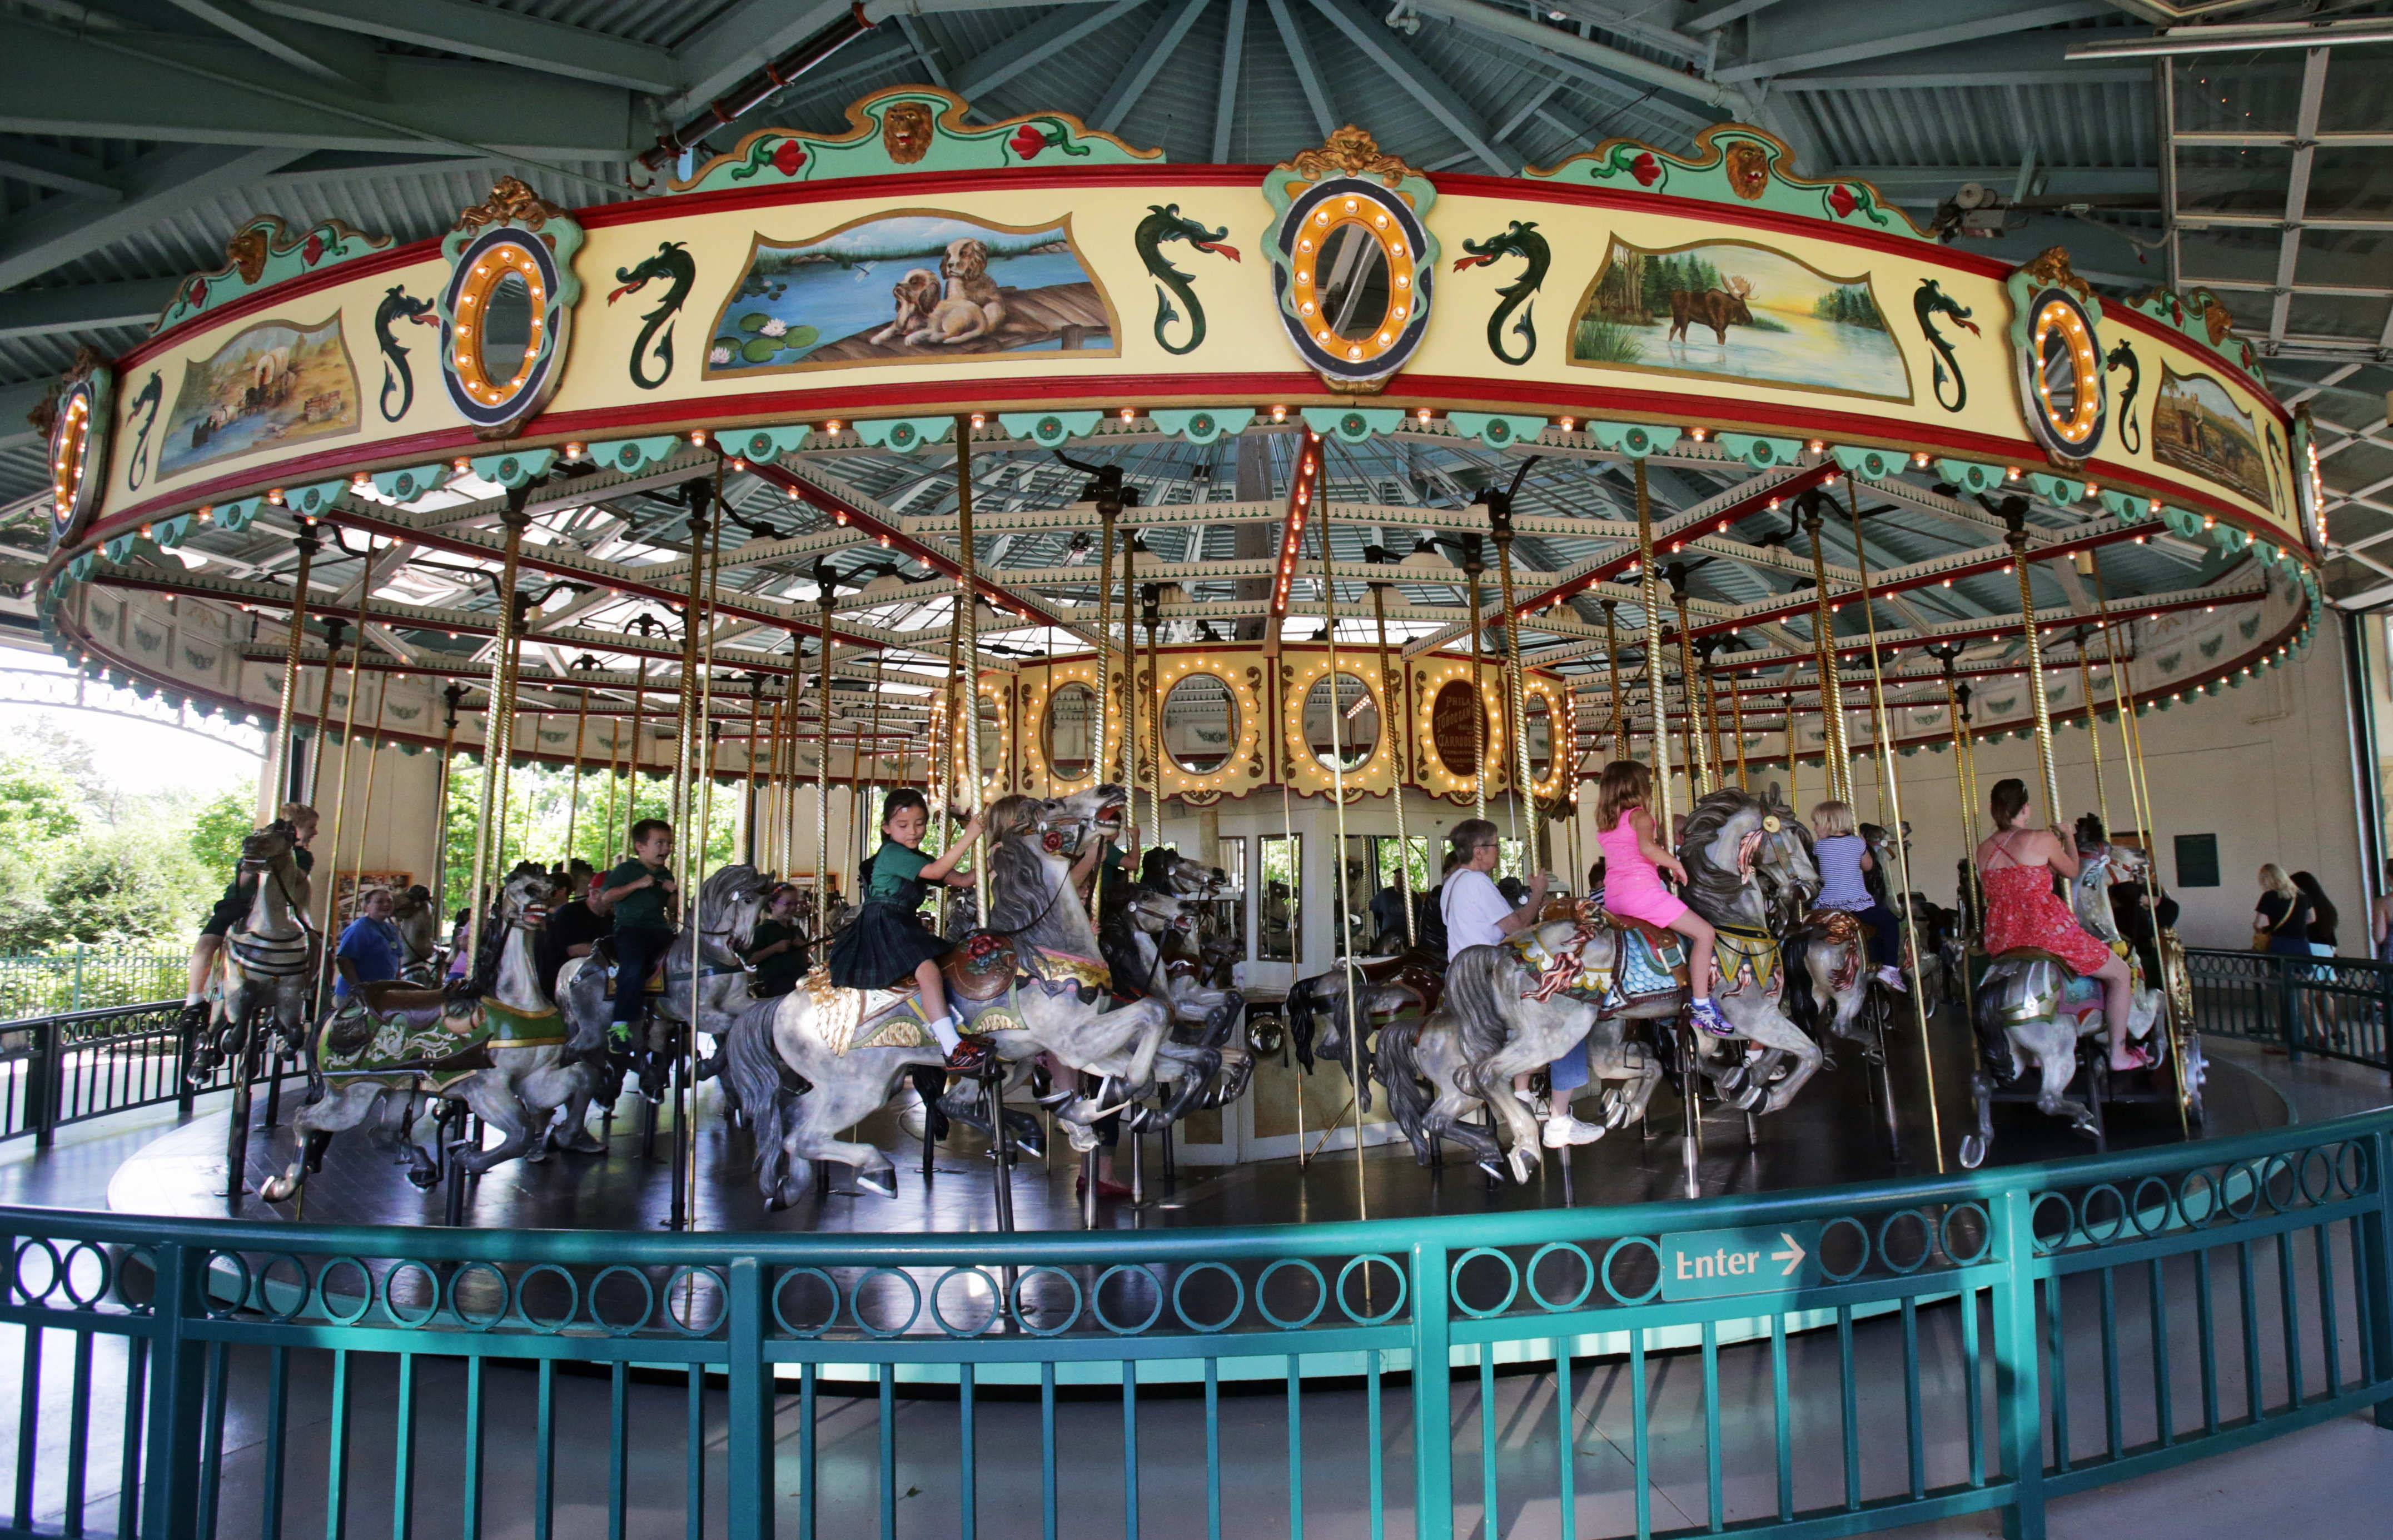 Kids and adults ride the 100-year-old Cafesjian's Carousel in the Como Town amusement park in St. Paul, Minn. Parking at the Como Town and adjacent Como Park Zoo and Conservatory is free, but there is a charge to ride the Carousel.